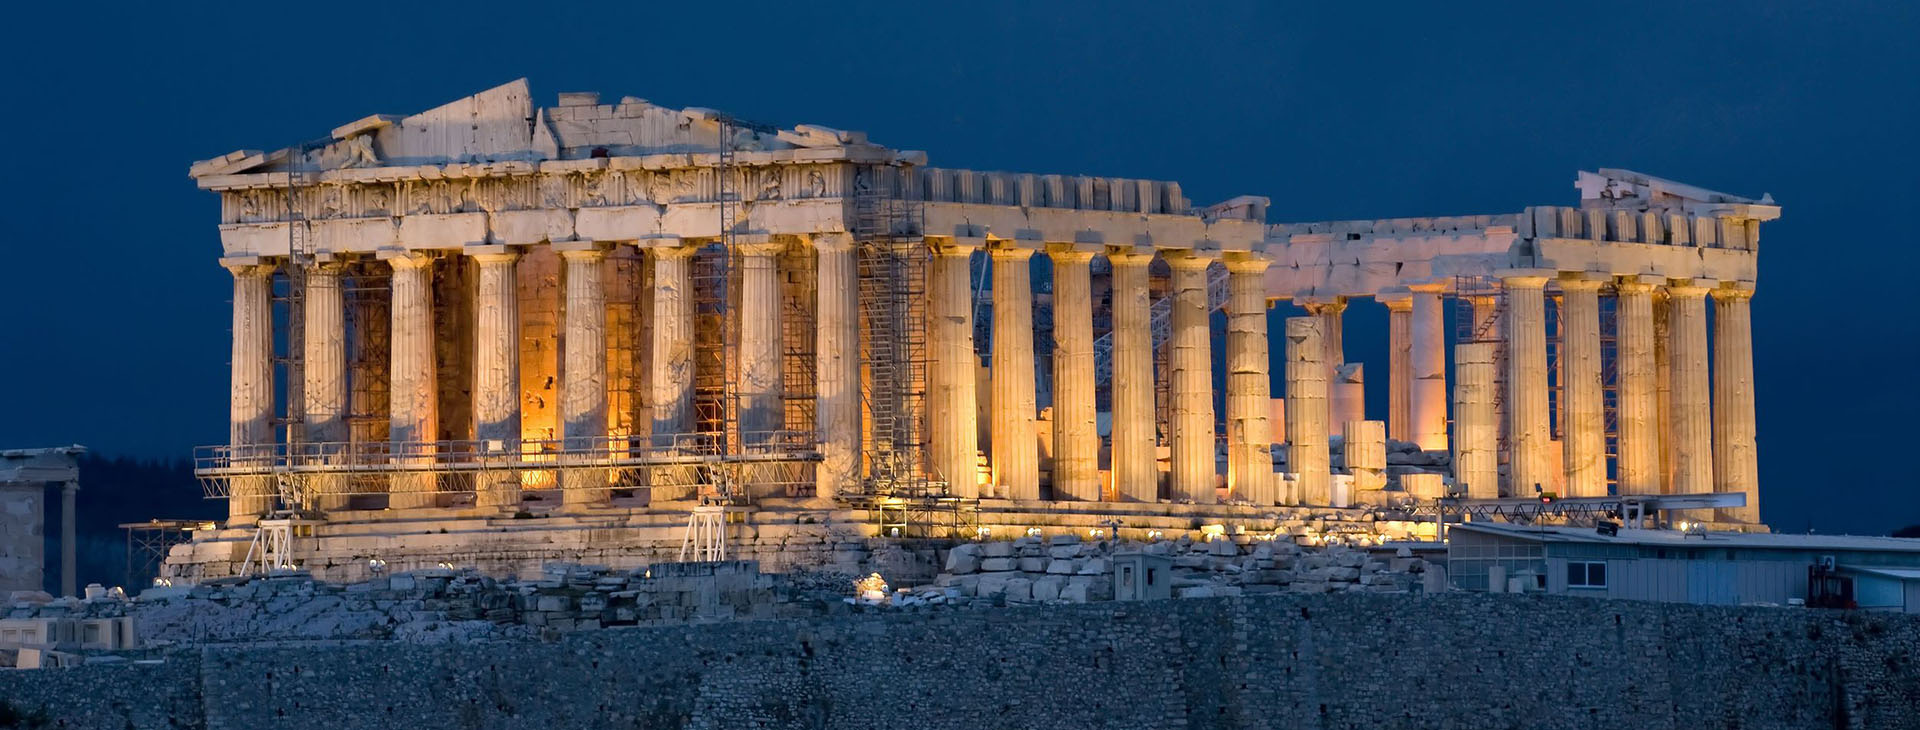 The Parthenon at Athens' Acropolis by night